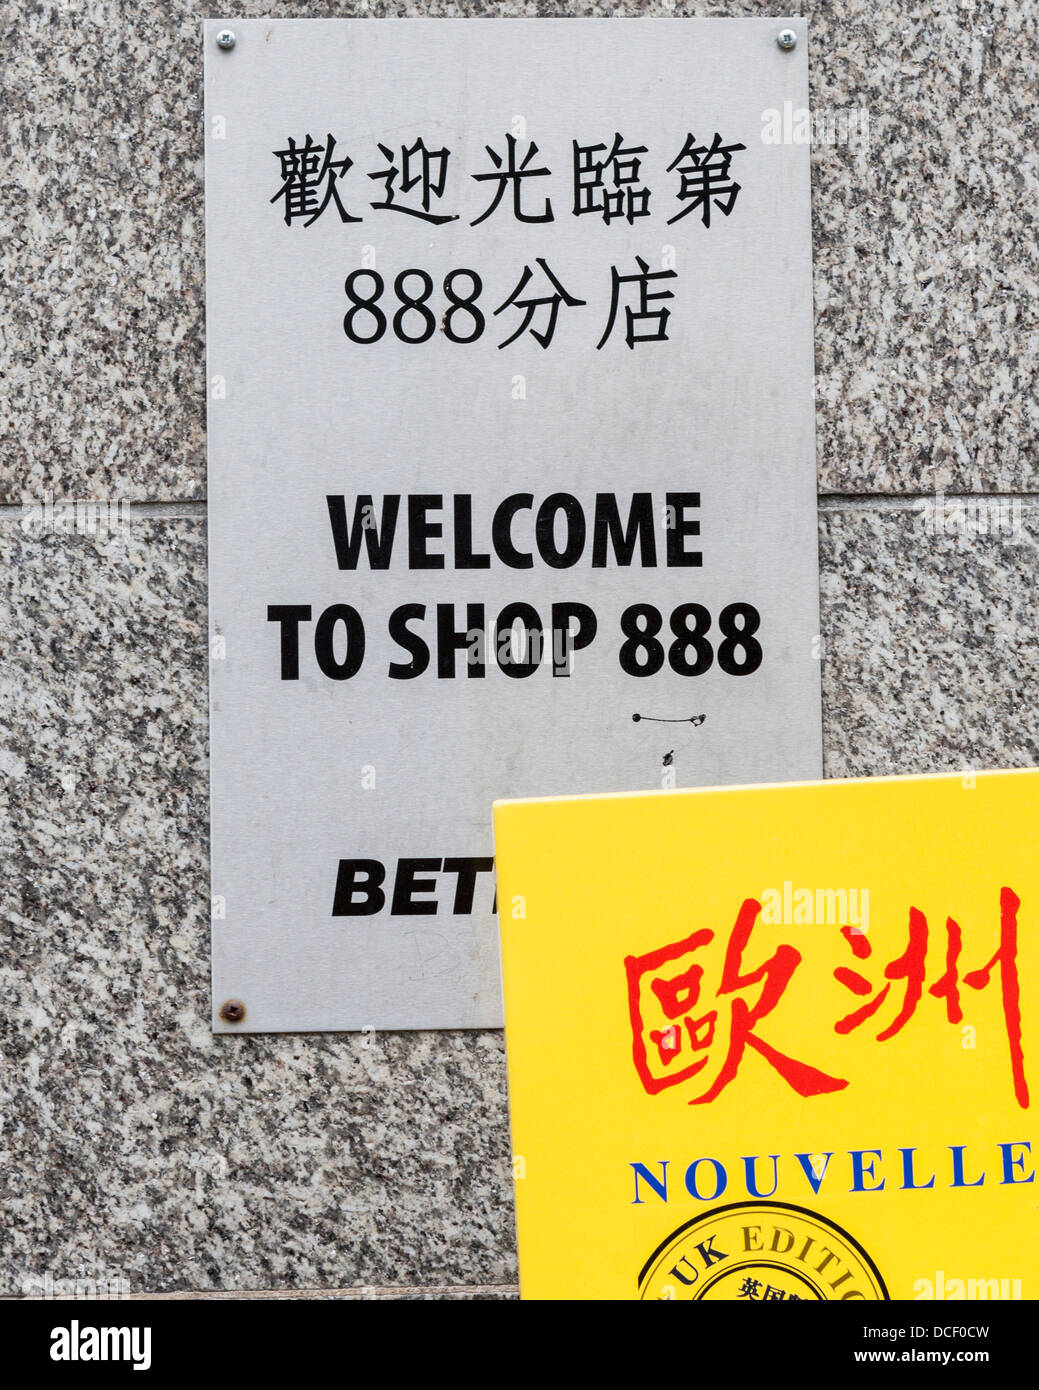 Bilingual welcome sign outside shop 888 (Betfred Betting Shop) ChinaTown, London W1ChinaTown, London W1 - Stock Image